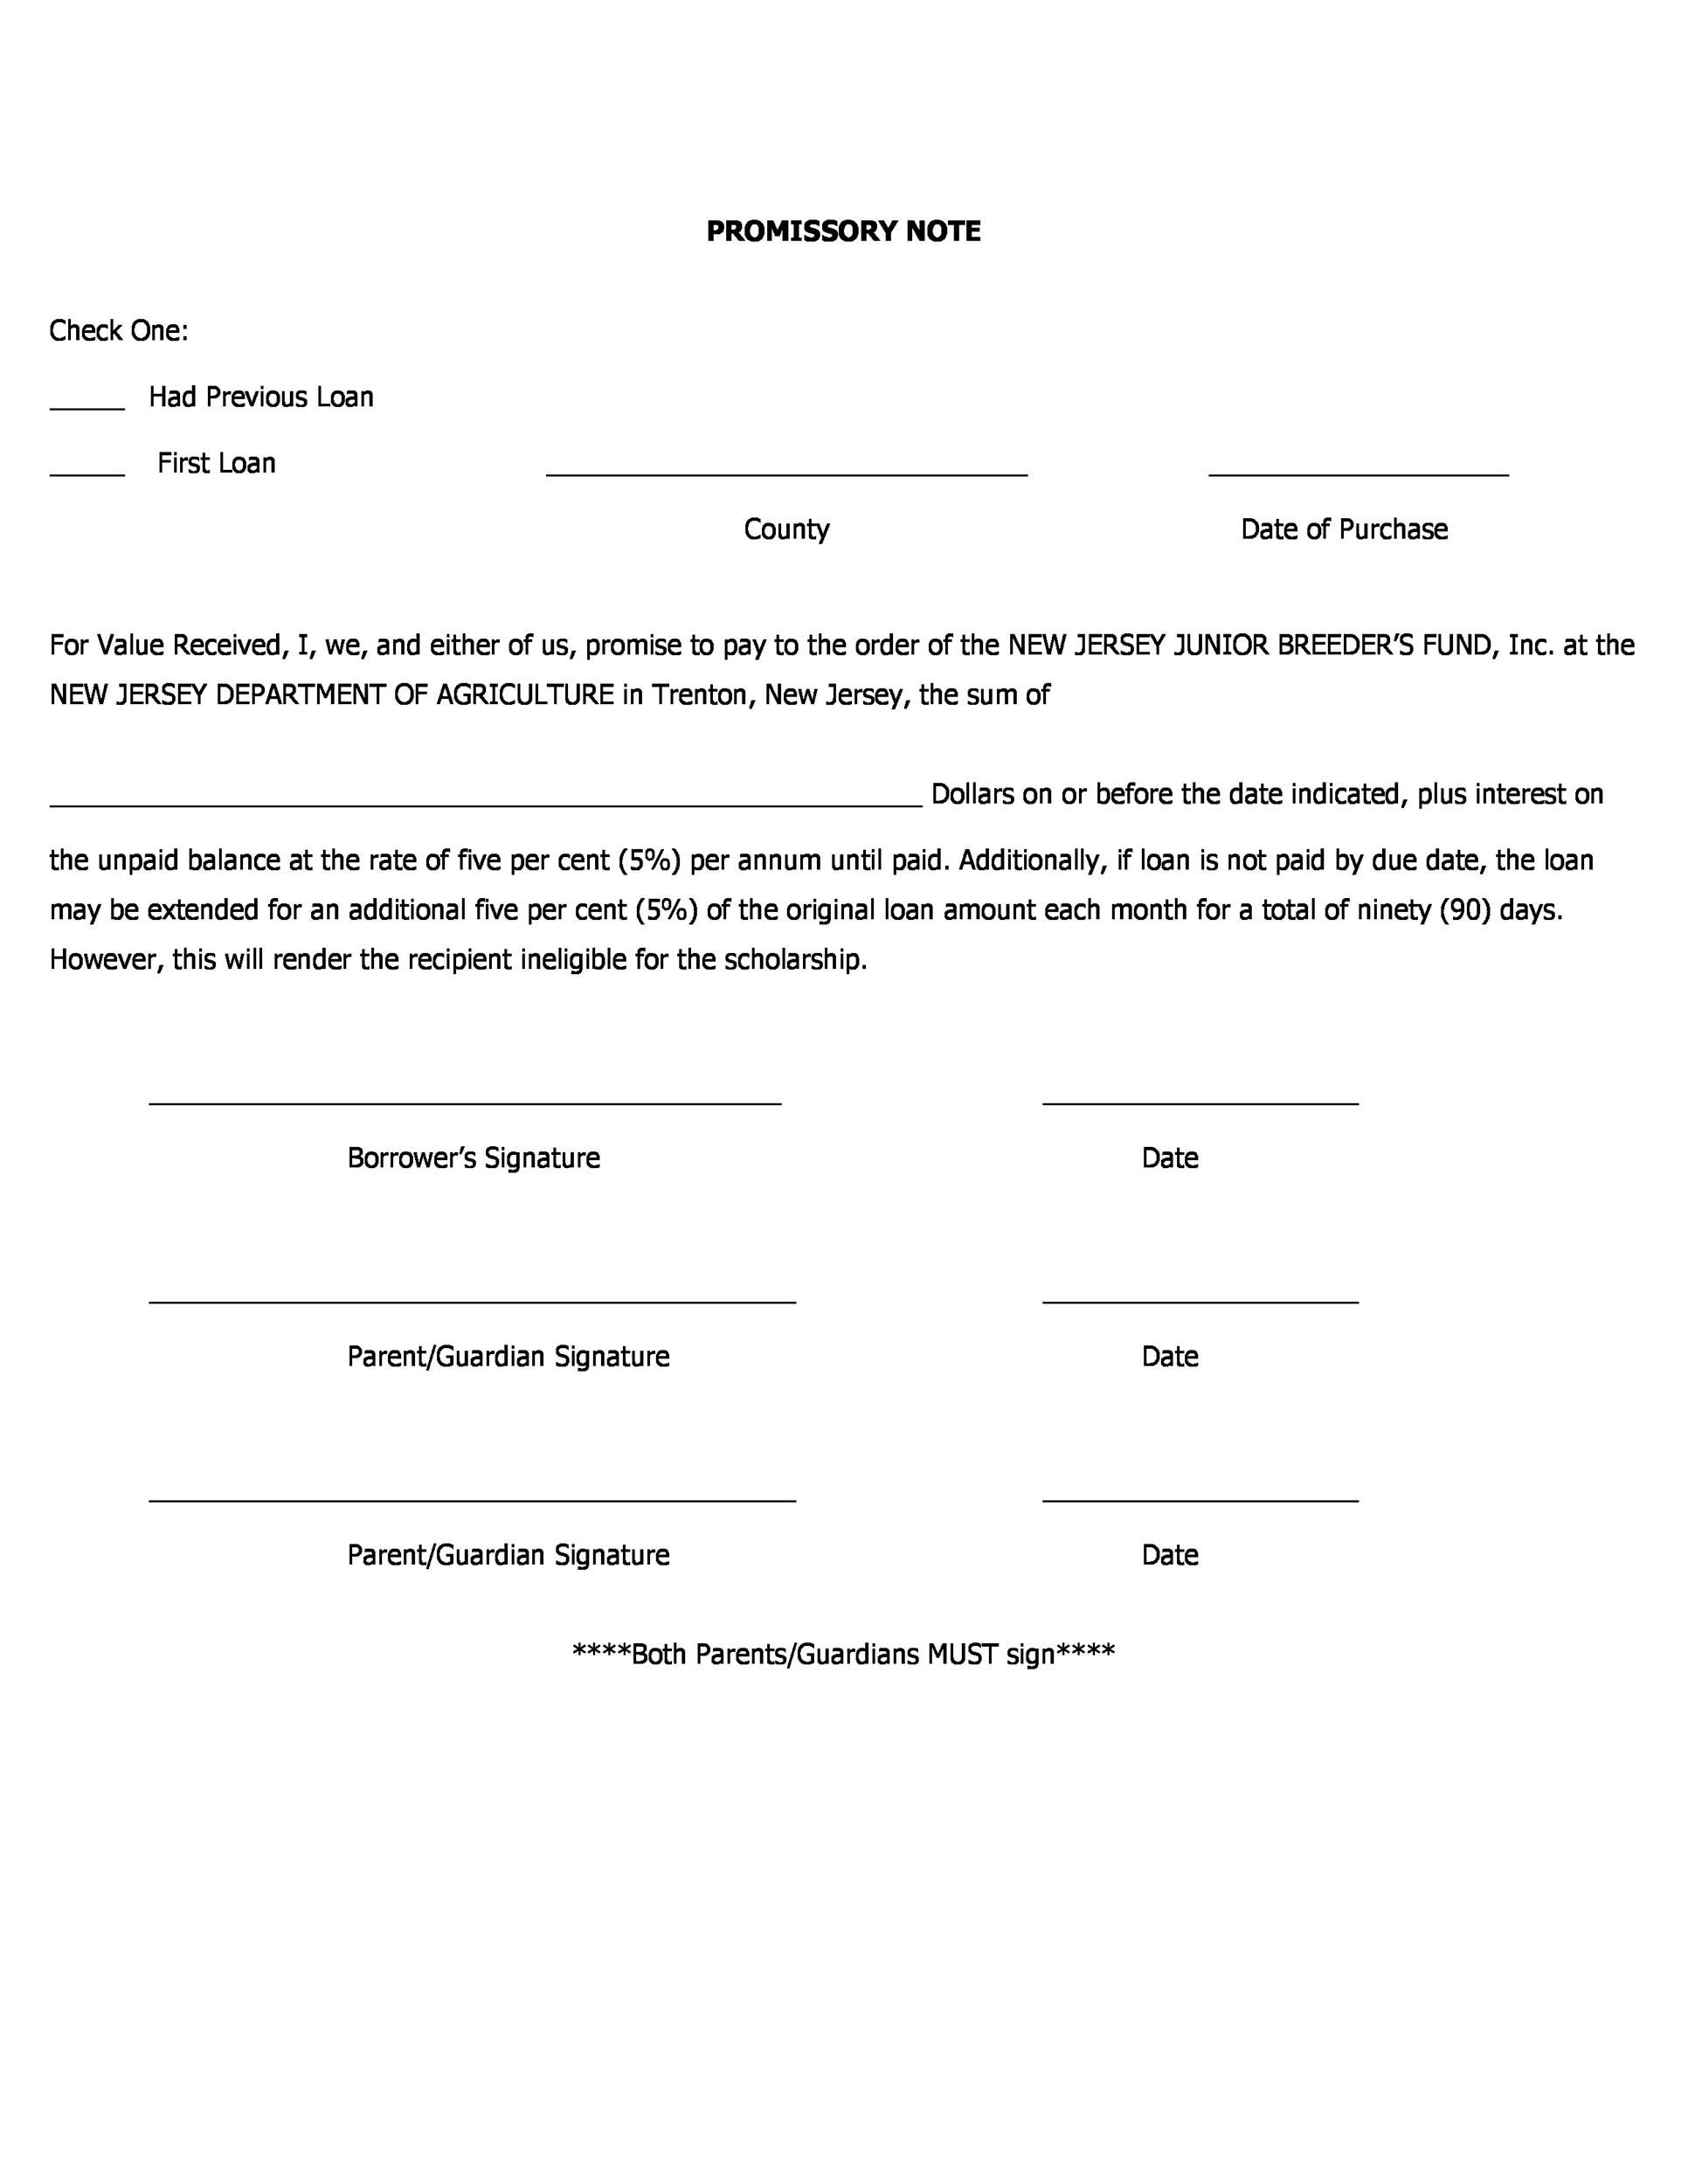 45 free promissory note templates amp forms word amp pdf